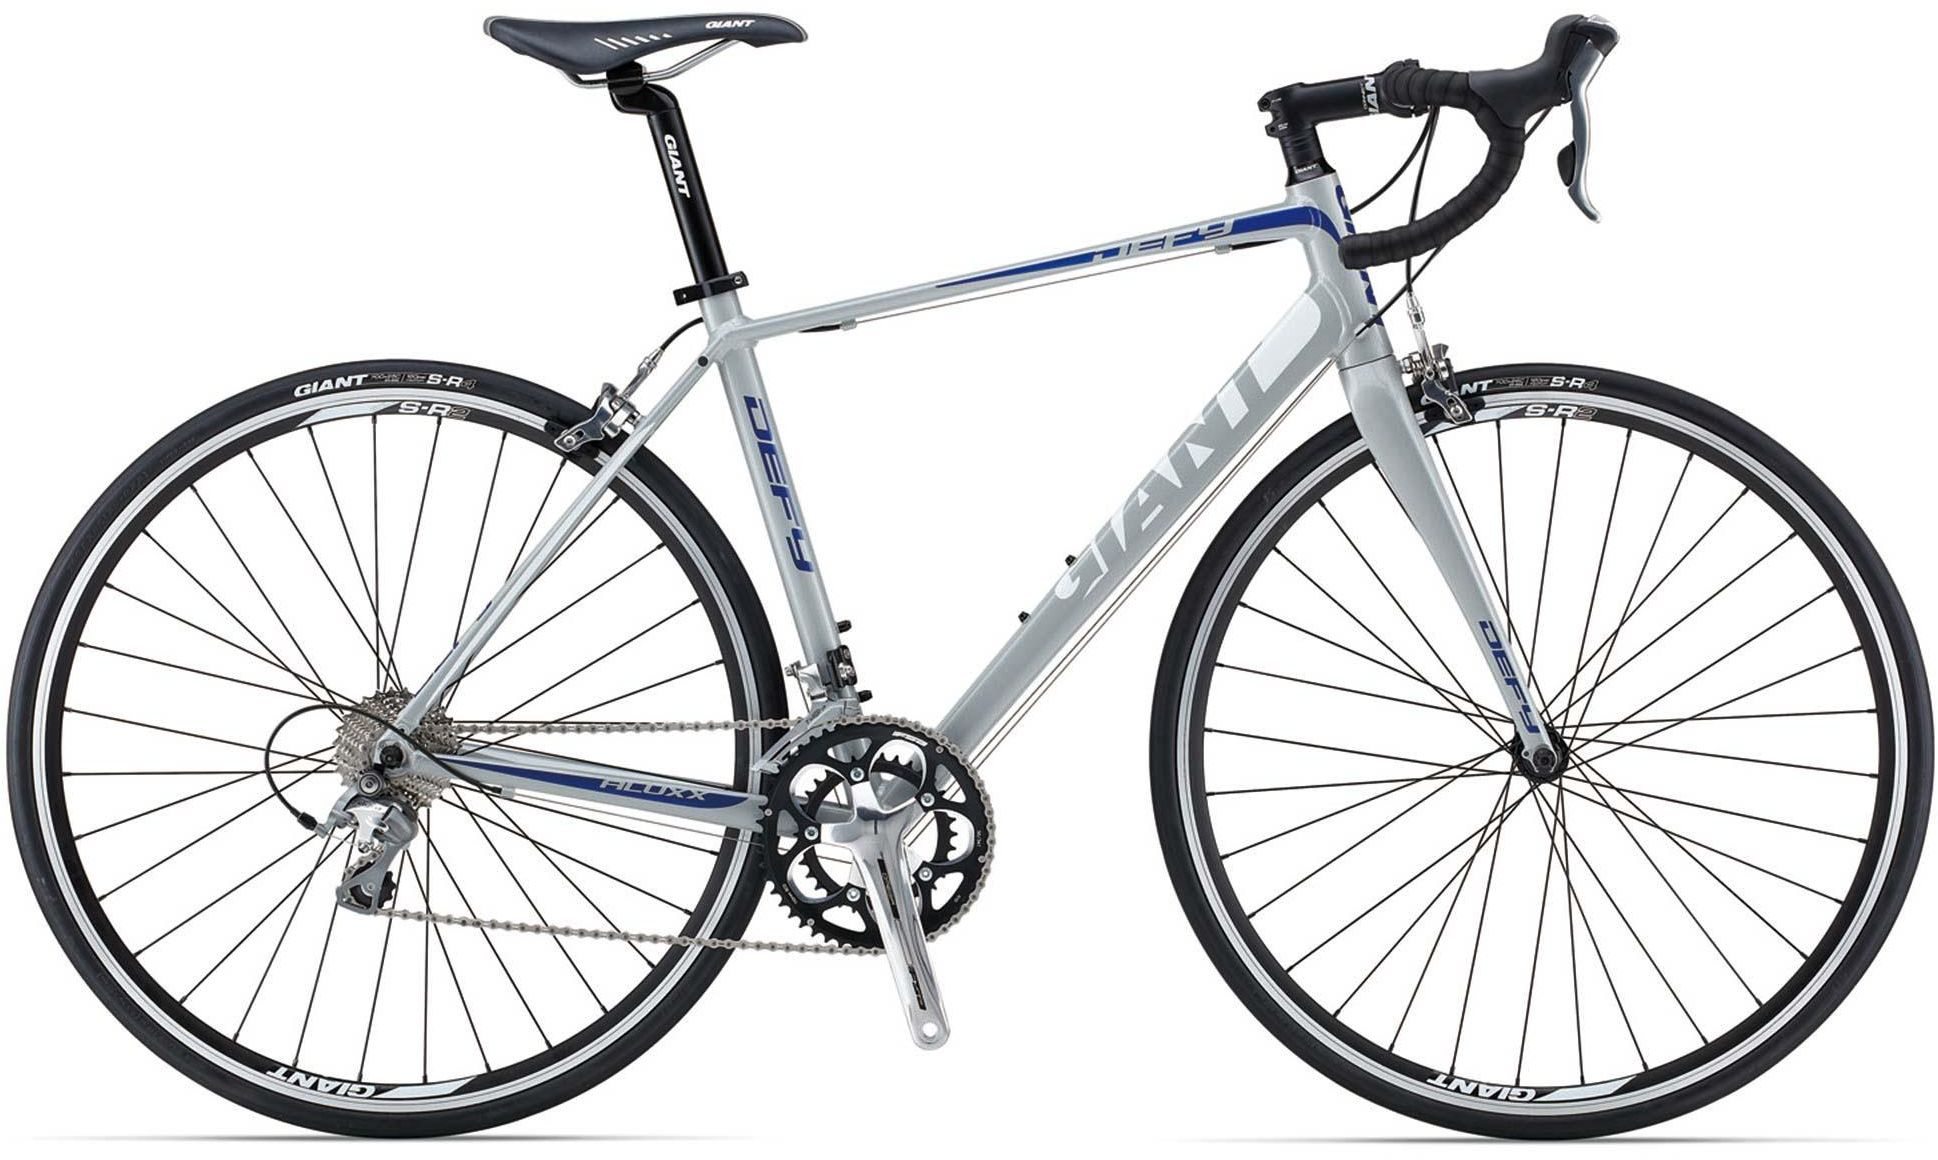 2013 giant defy 5 review submited images